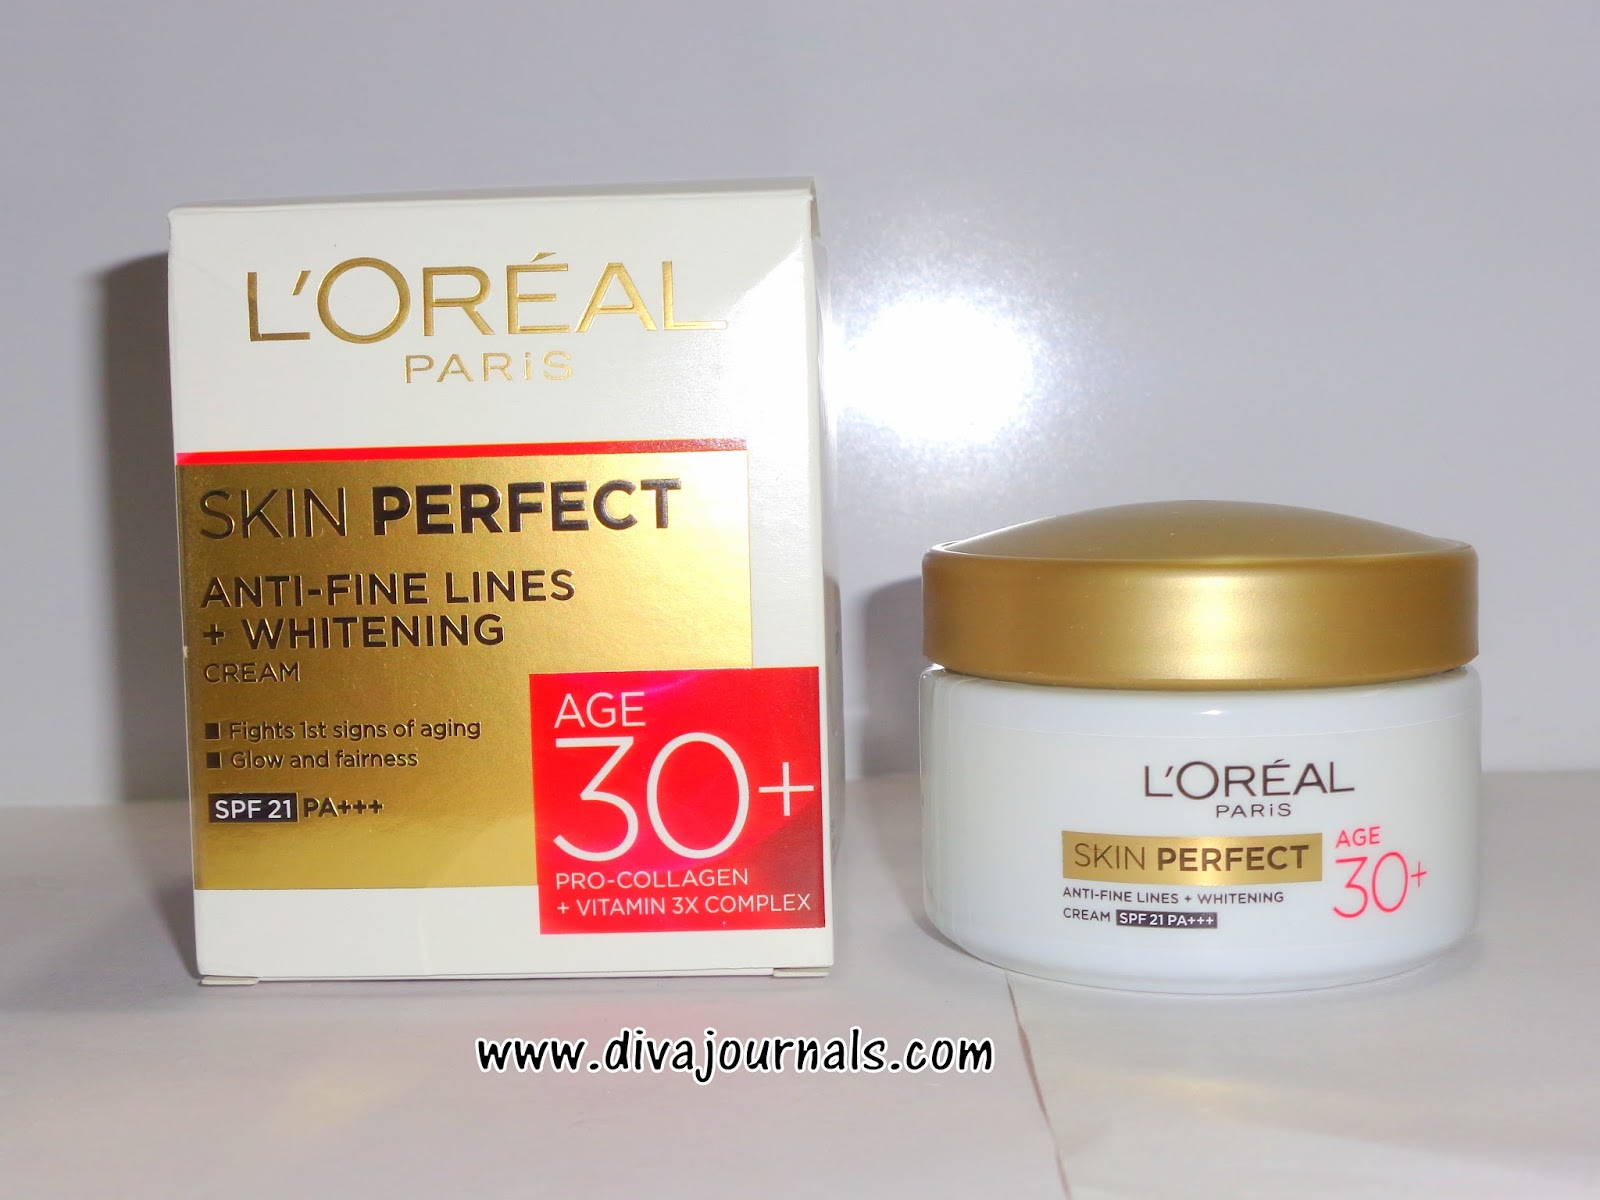 Loreal Paris Skin Perfect Anti-Fine Lines+Whitening Cream for Age 30+